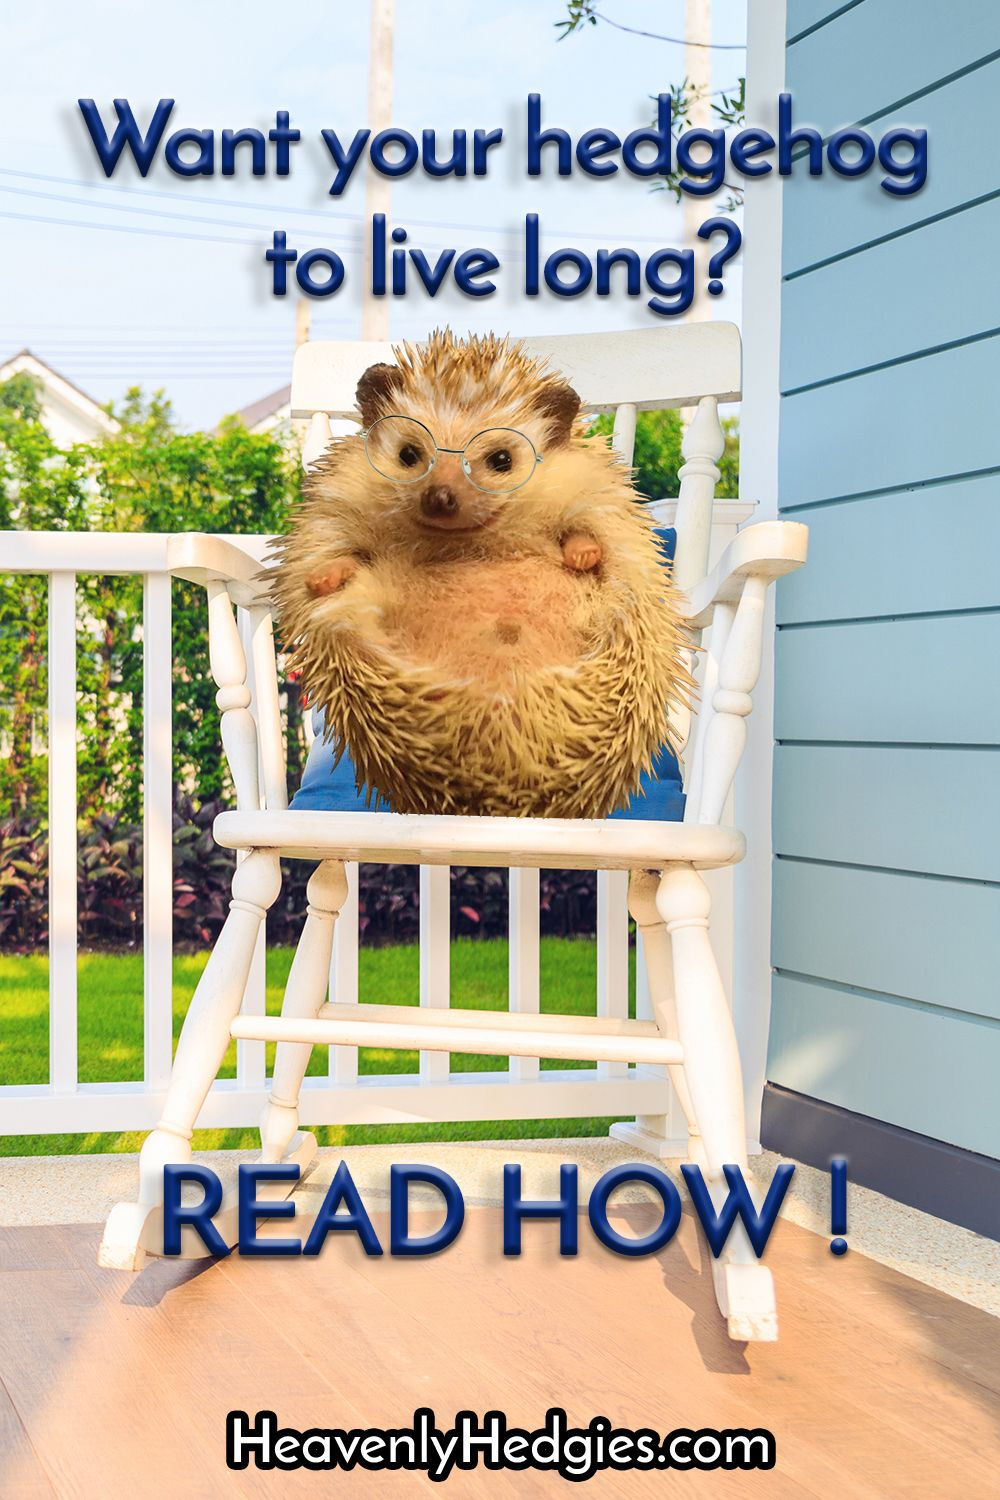 Hedgehog lifespan and what impacts it pet care hedgehog